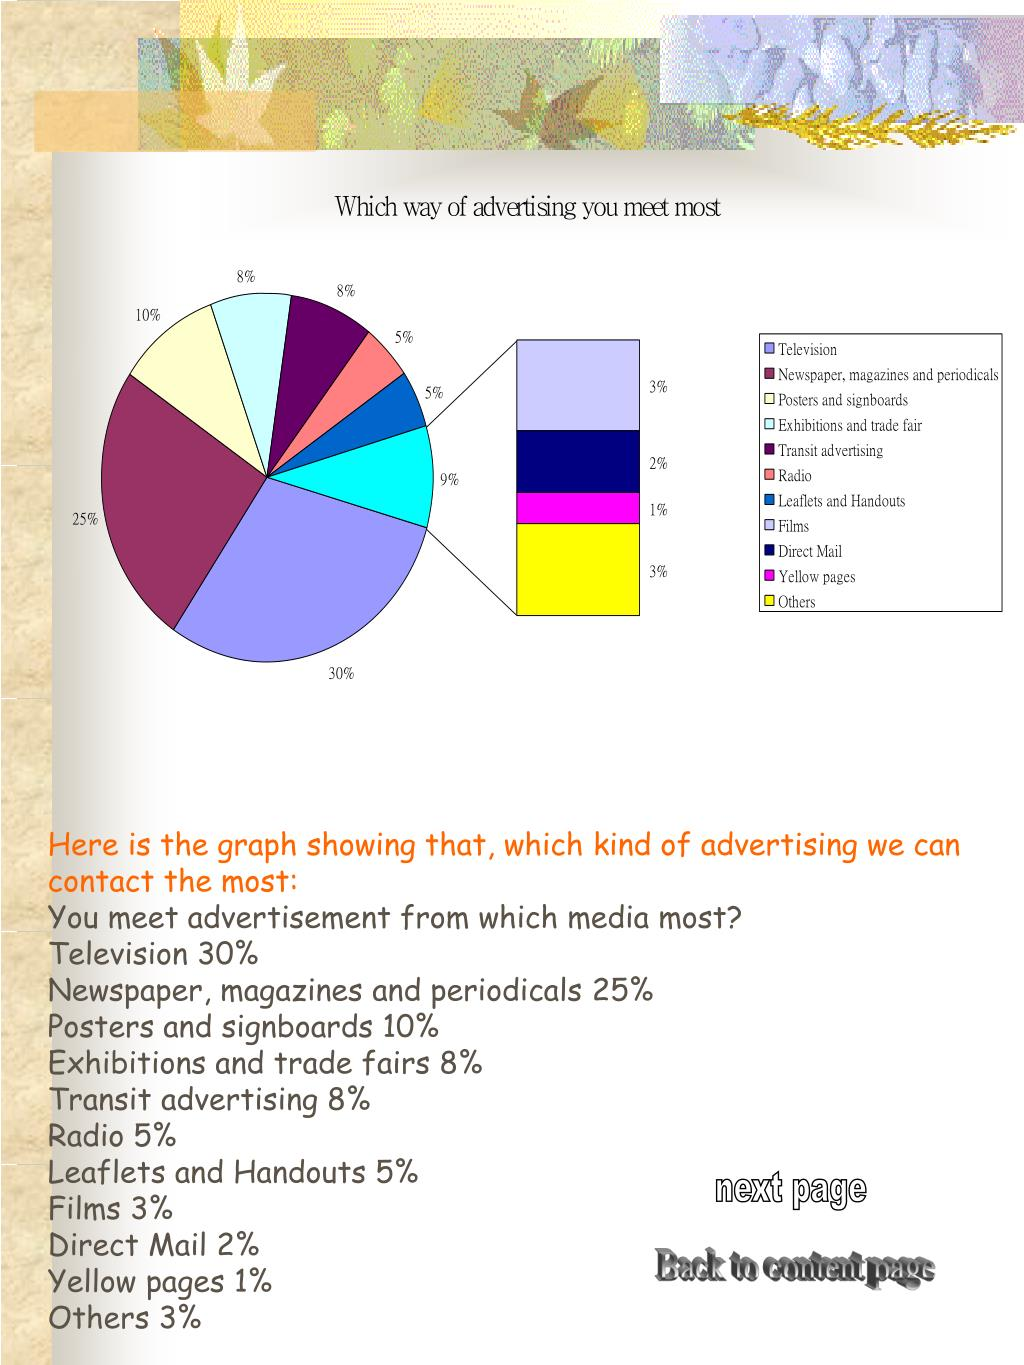 Here is the graph showing that, which kind of advertising we can contact the most: